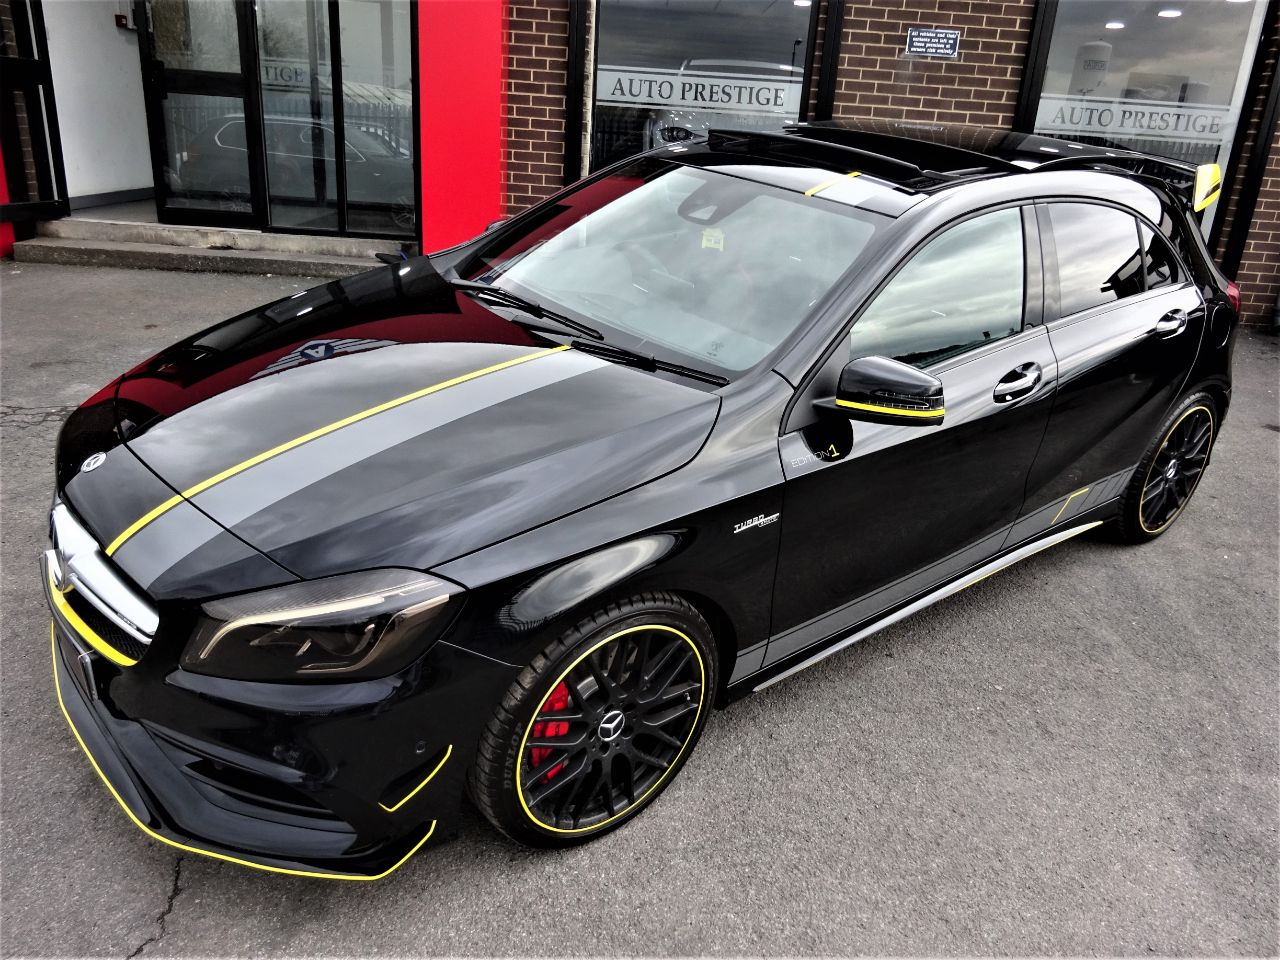 Mercedes-Benz AMG 2.0 A45 4Matic Premium 5dr Auto BLACK BRAND NEW DRY STORED VATQ YELLOW NIGHT EDITION SPEC 67 Hatchback Petrol Black